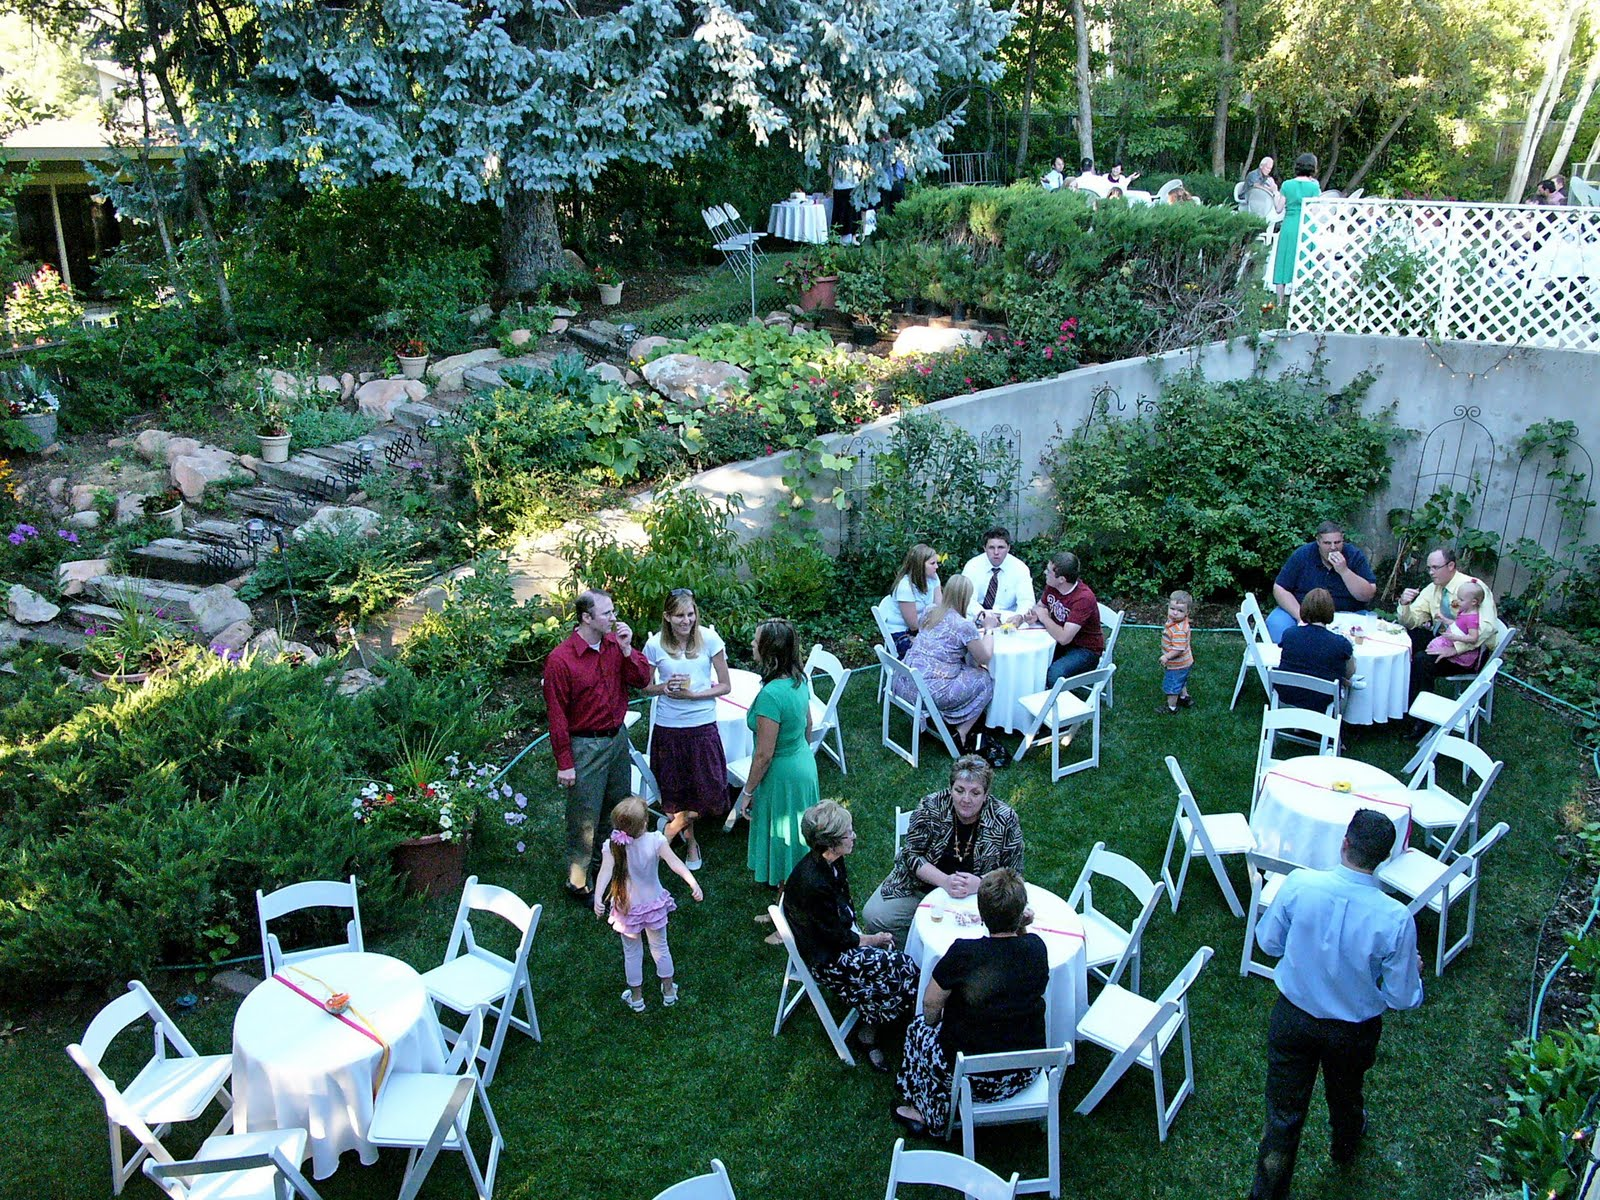 MOM DOES A BACKYARD WEDDING